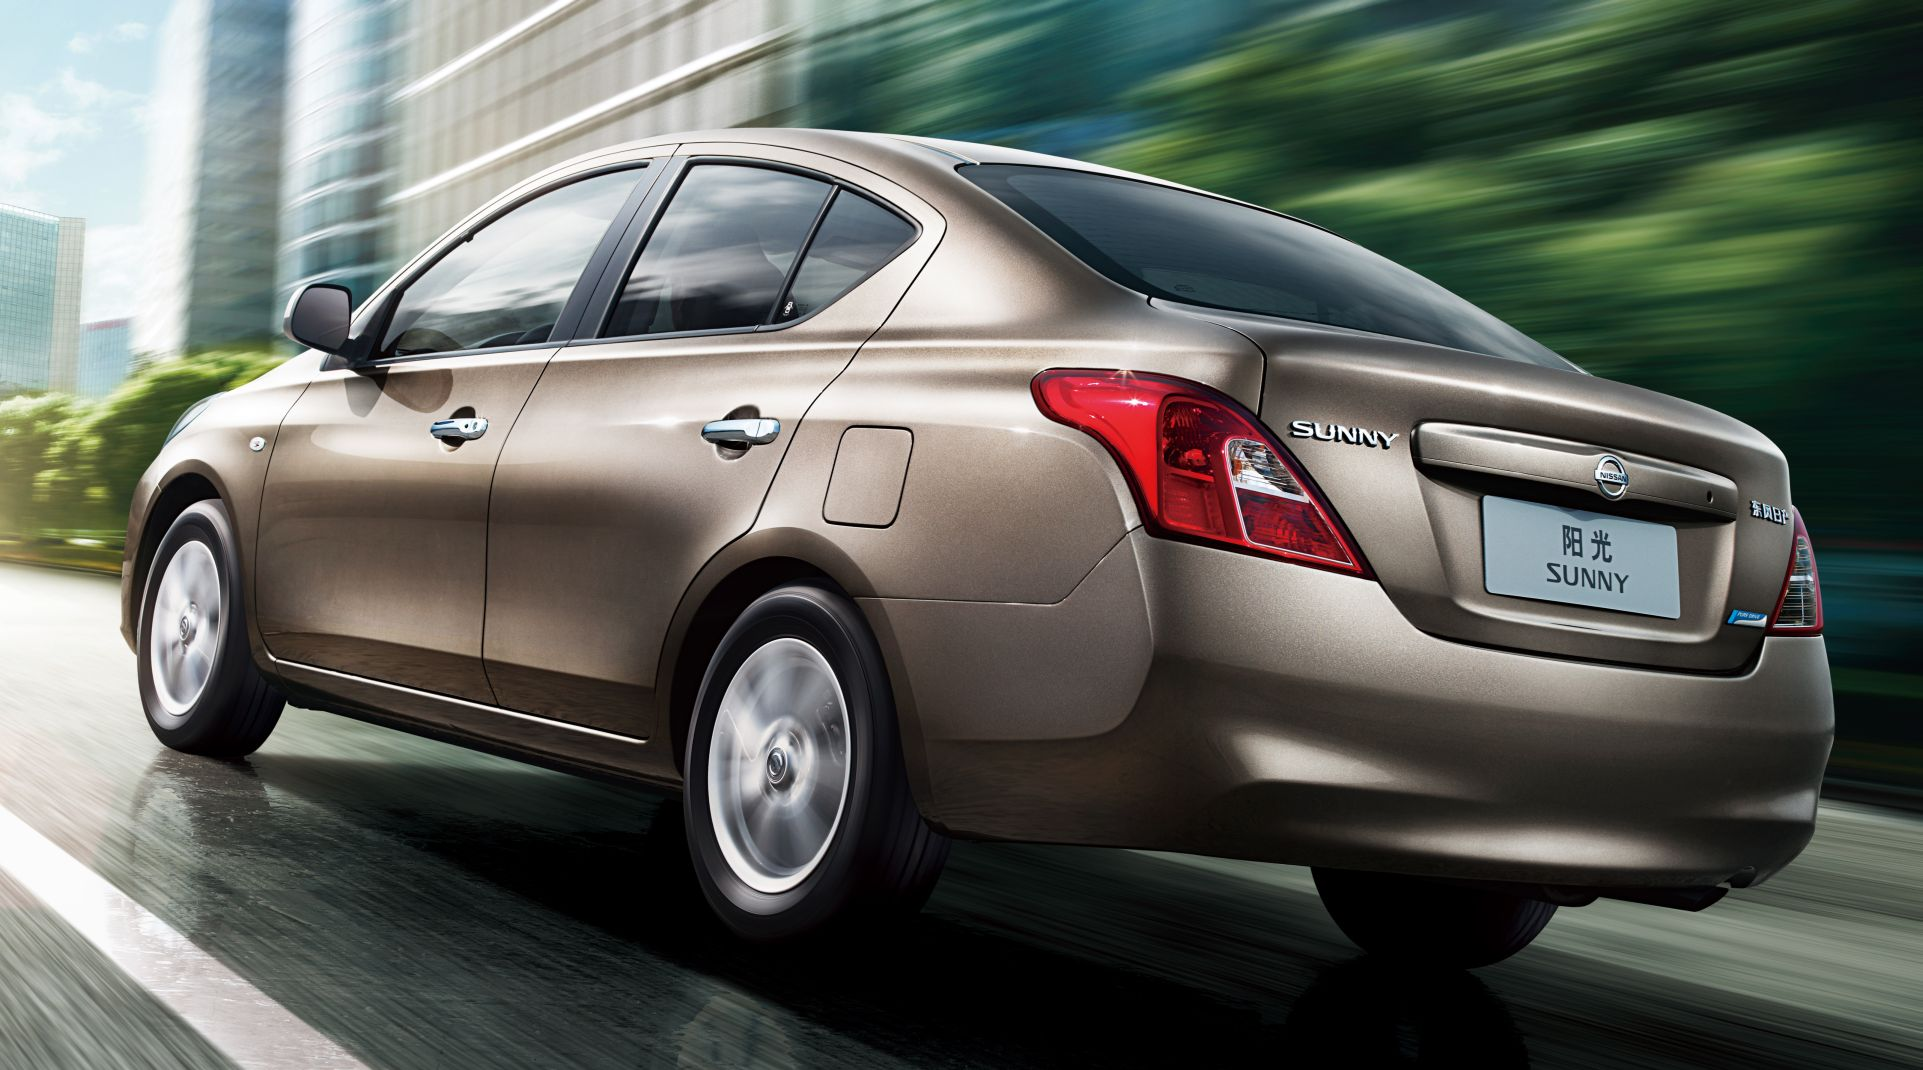 2012 Nissan Sunny Prices In Uae Gulf Specs Reviews For Dubai